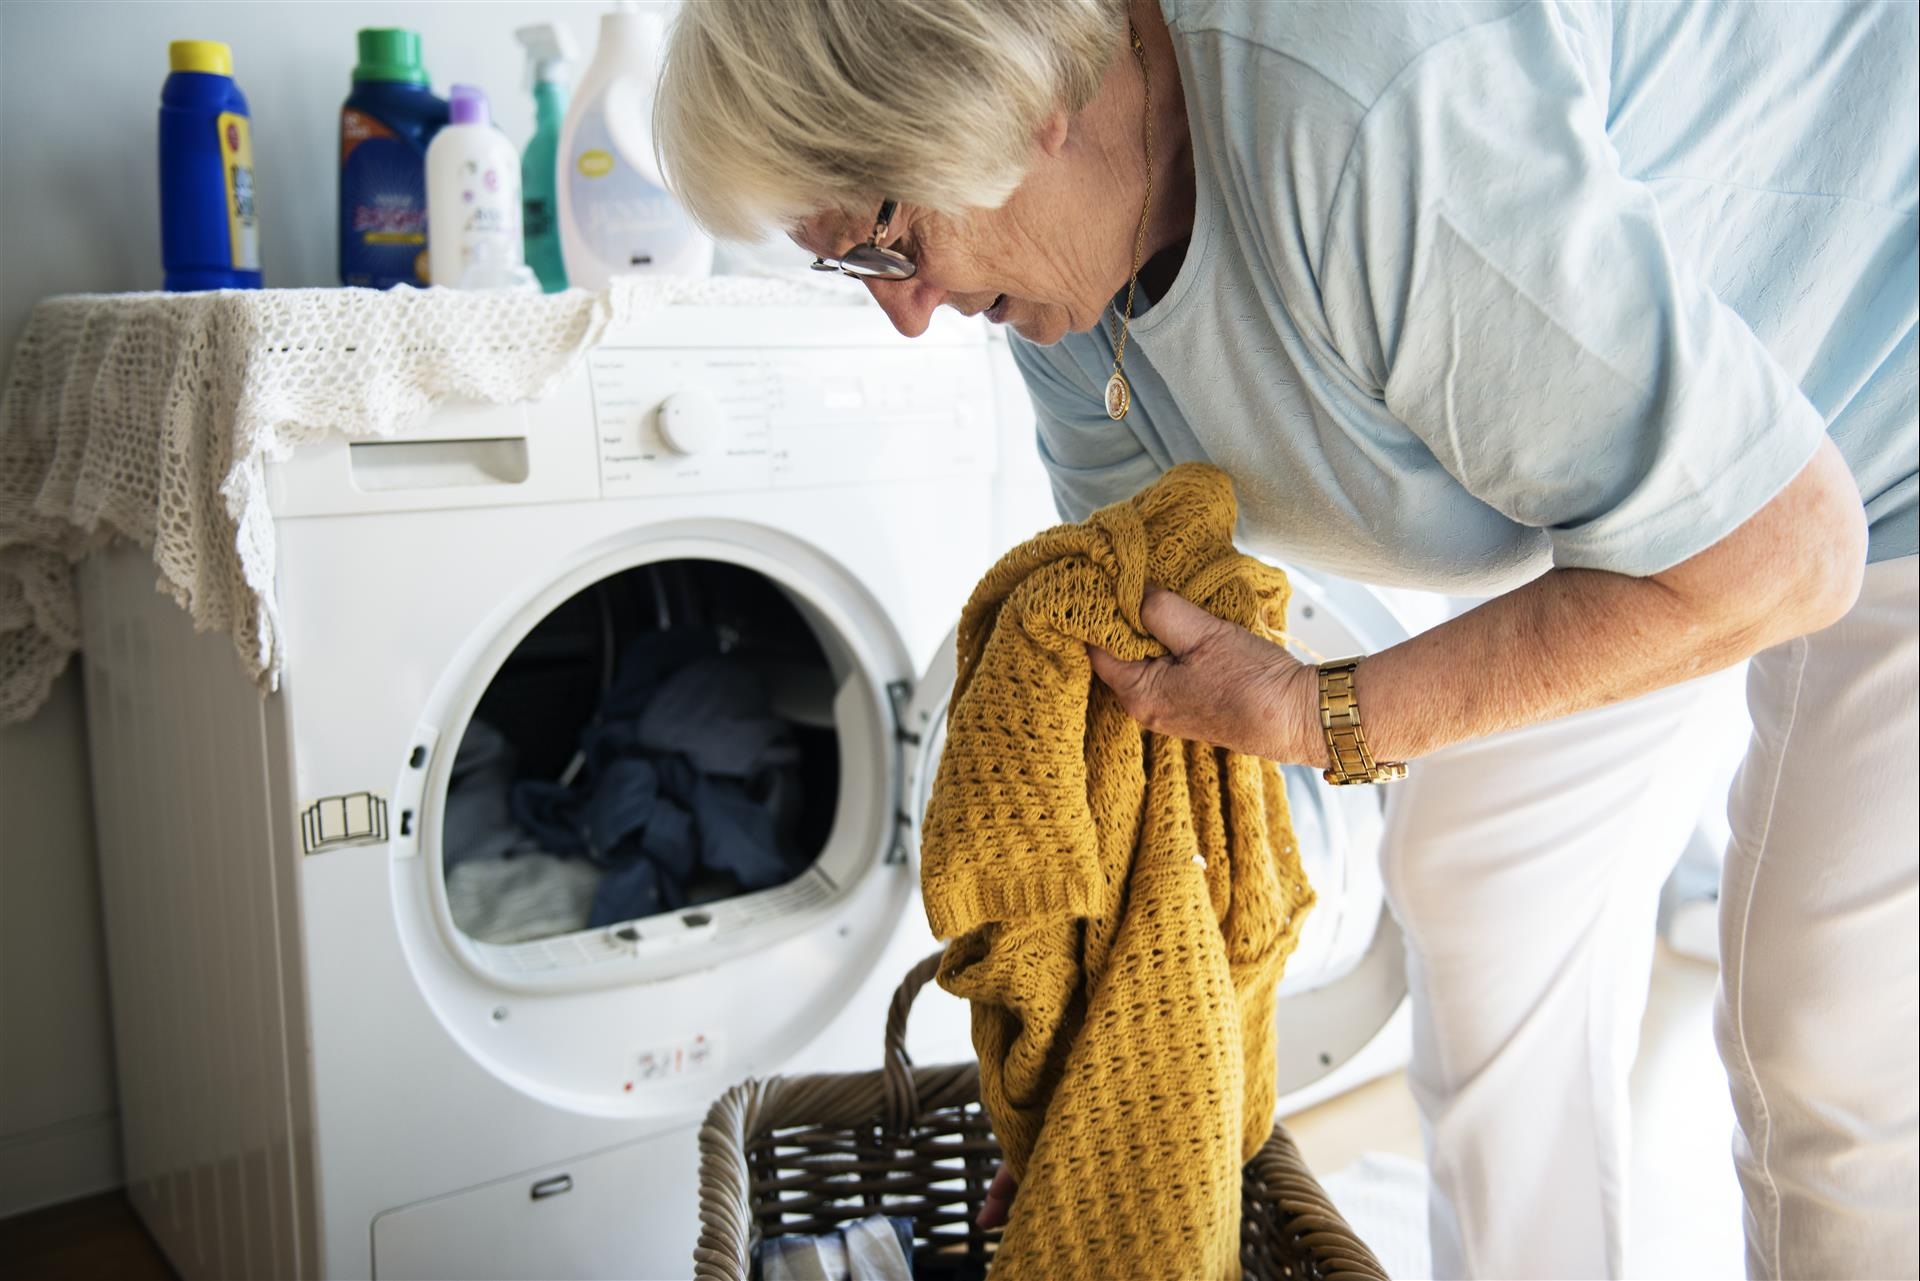 What Does Spring Cleaning Mean in an Assisted Living Apartment?